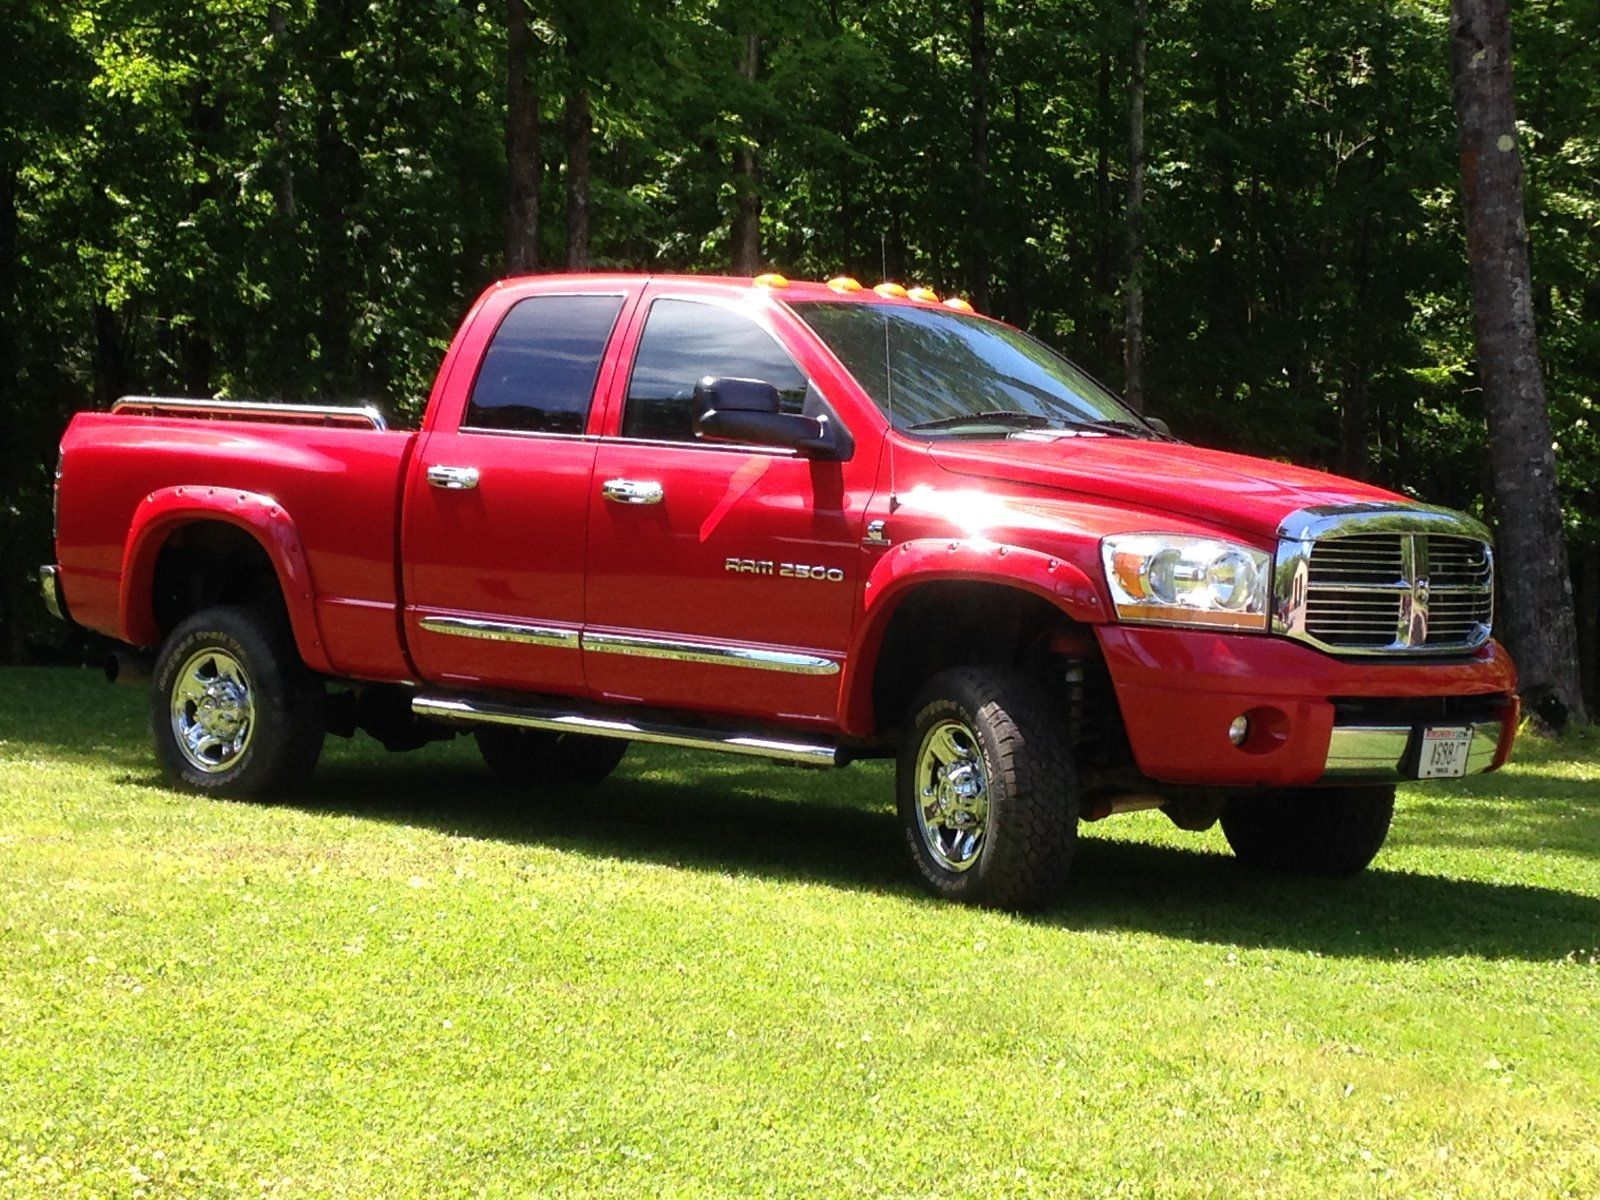 2006 Dodge Ram 2500 Laramie lifted for sale